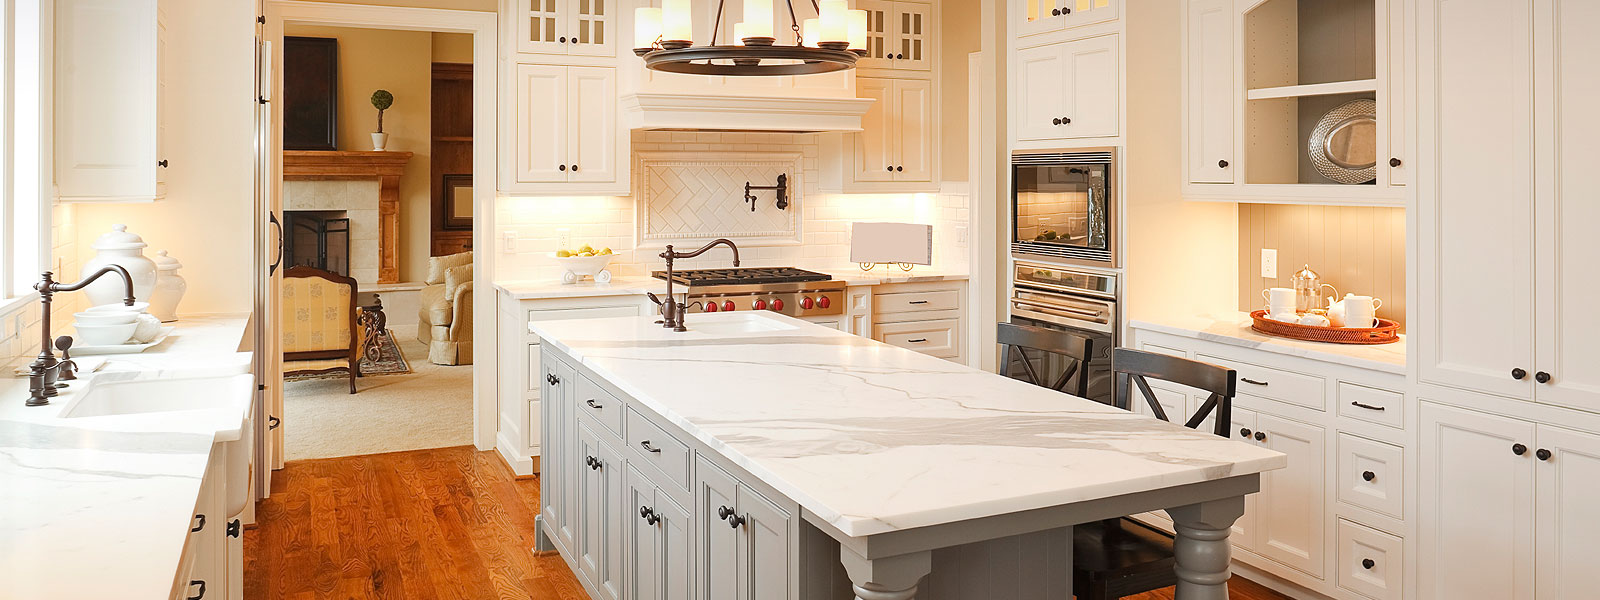 Luxurious Home Kitchen